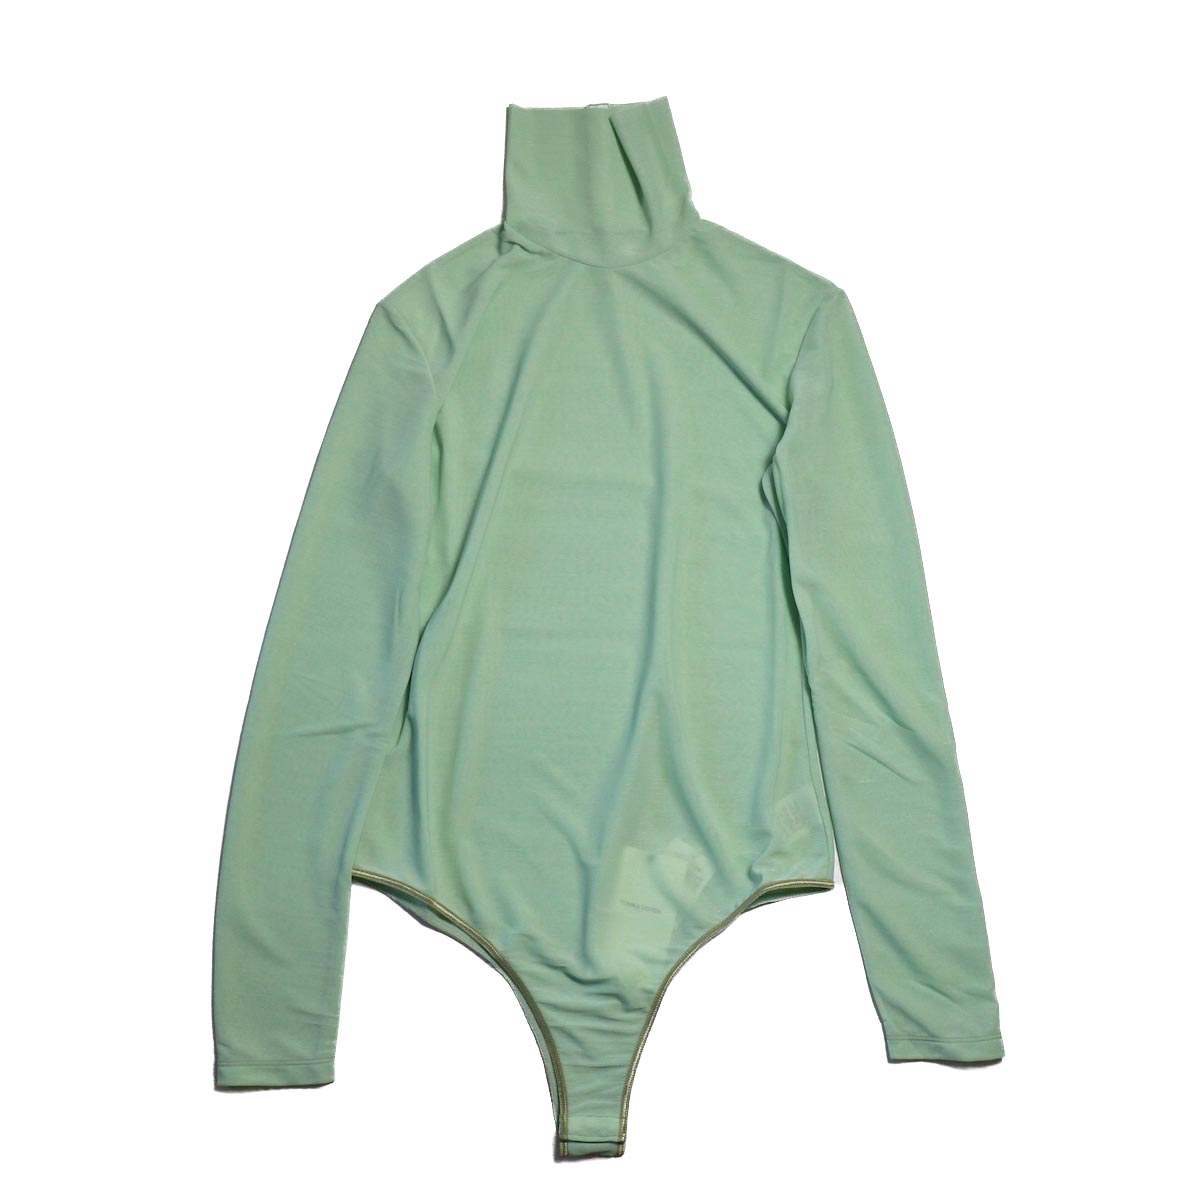 FUMIKA UCHIDA / TURTLE-NECK BODY SUIT POLI -EMELARD GREEN